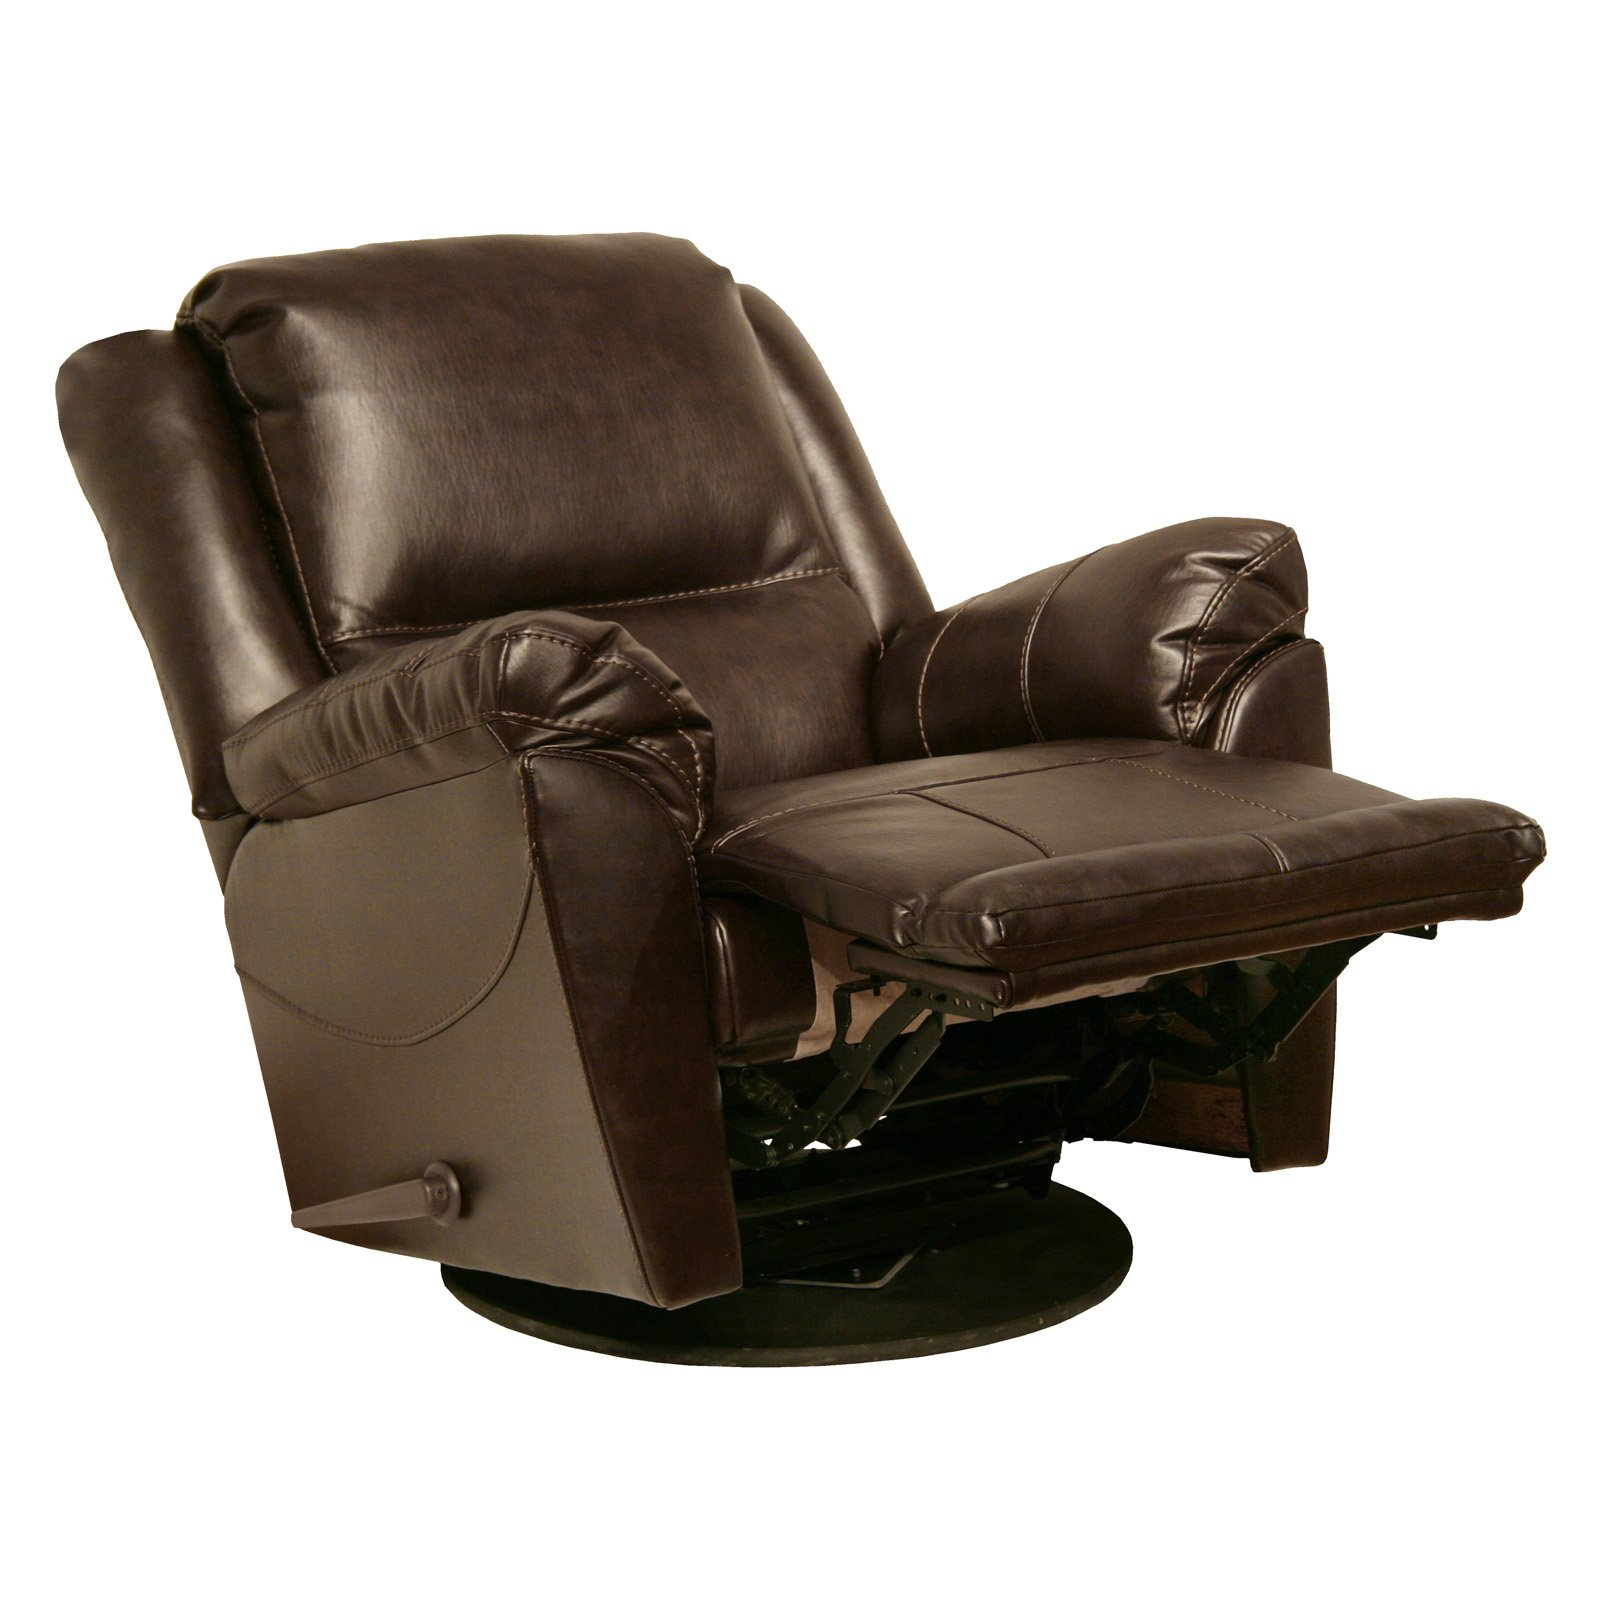 Catnapper Maverick Chaise Leather Swivel Glider Recliner – Walmart Inside Swivel Tobacco Leather Chairs (View 15 of 20)